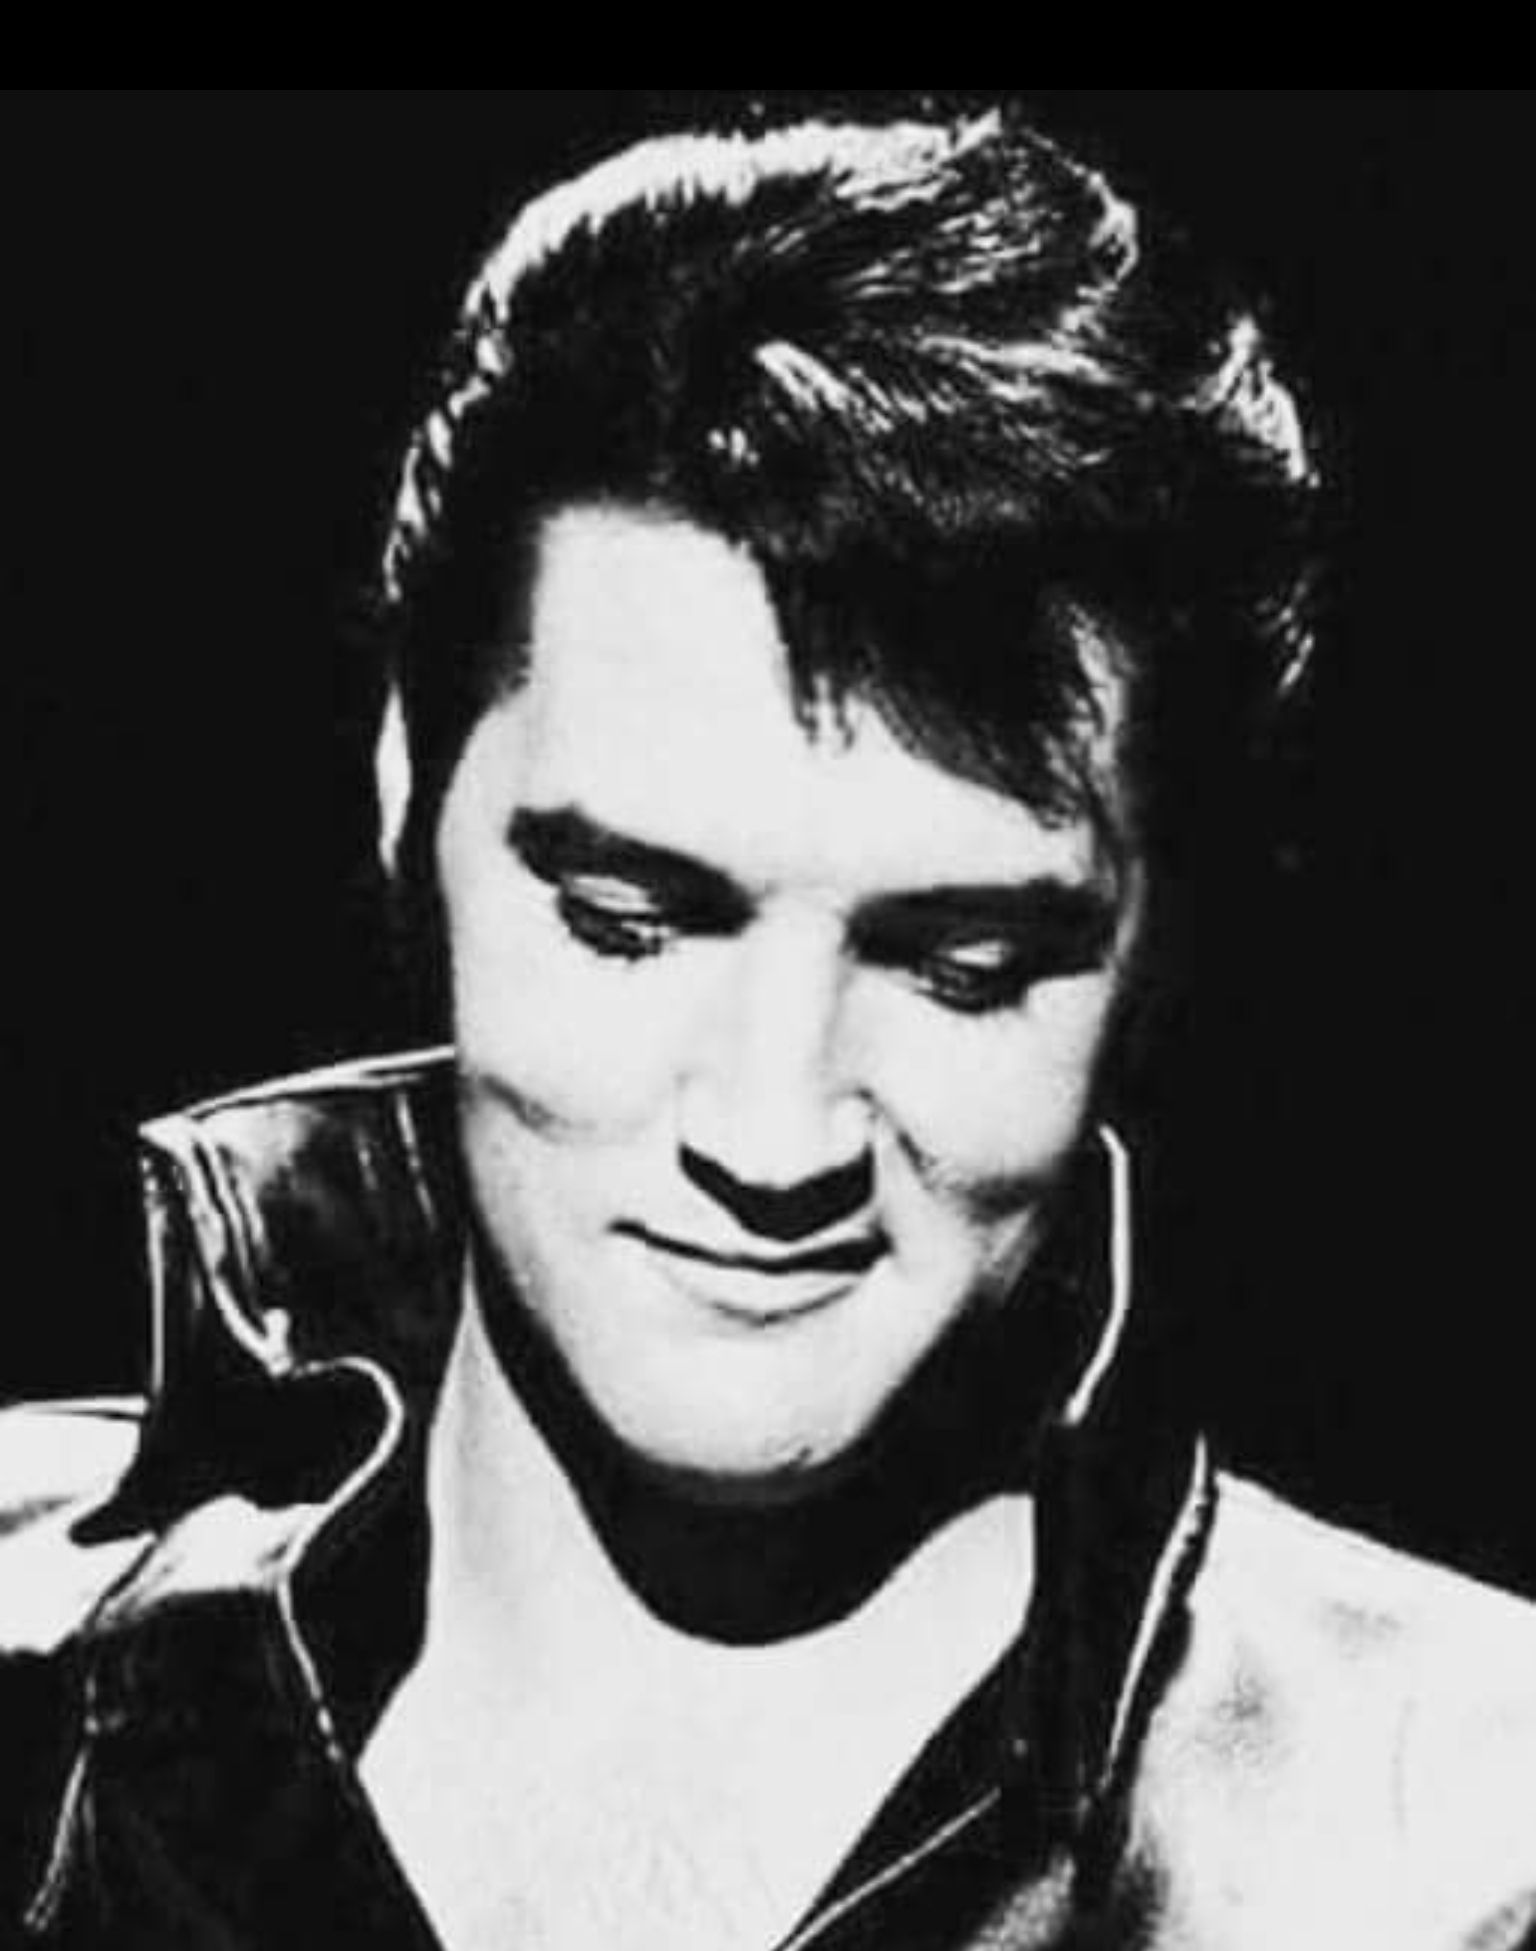 Pin By Barb H On Just A Hunk A Hunk Of Burning Love Elvis